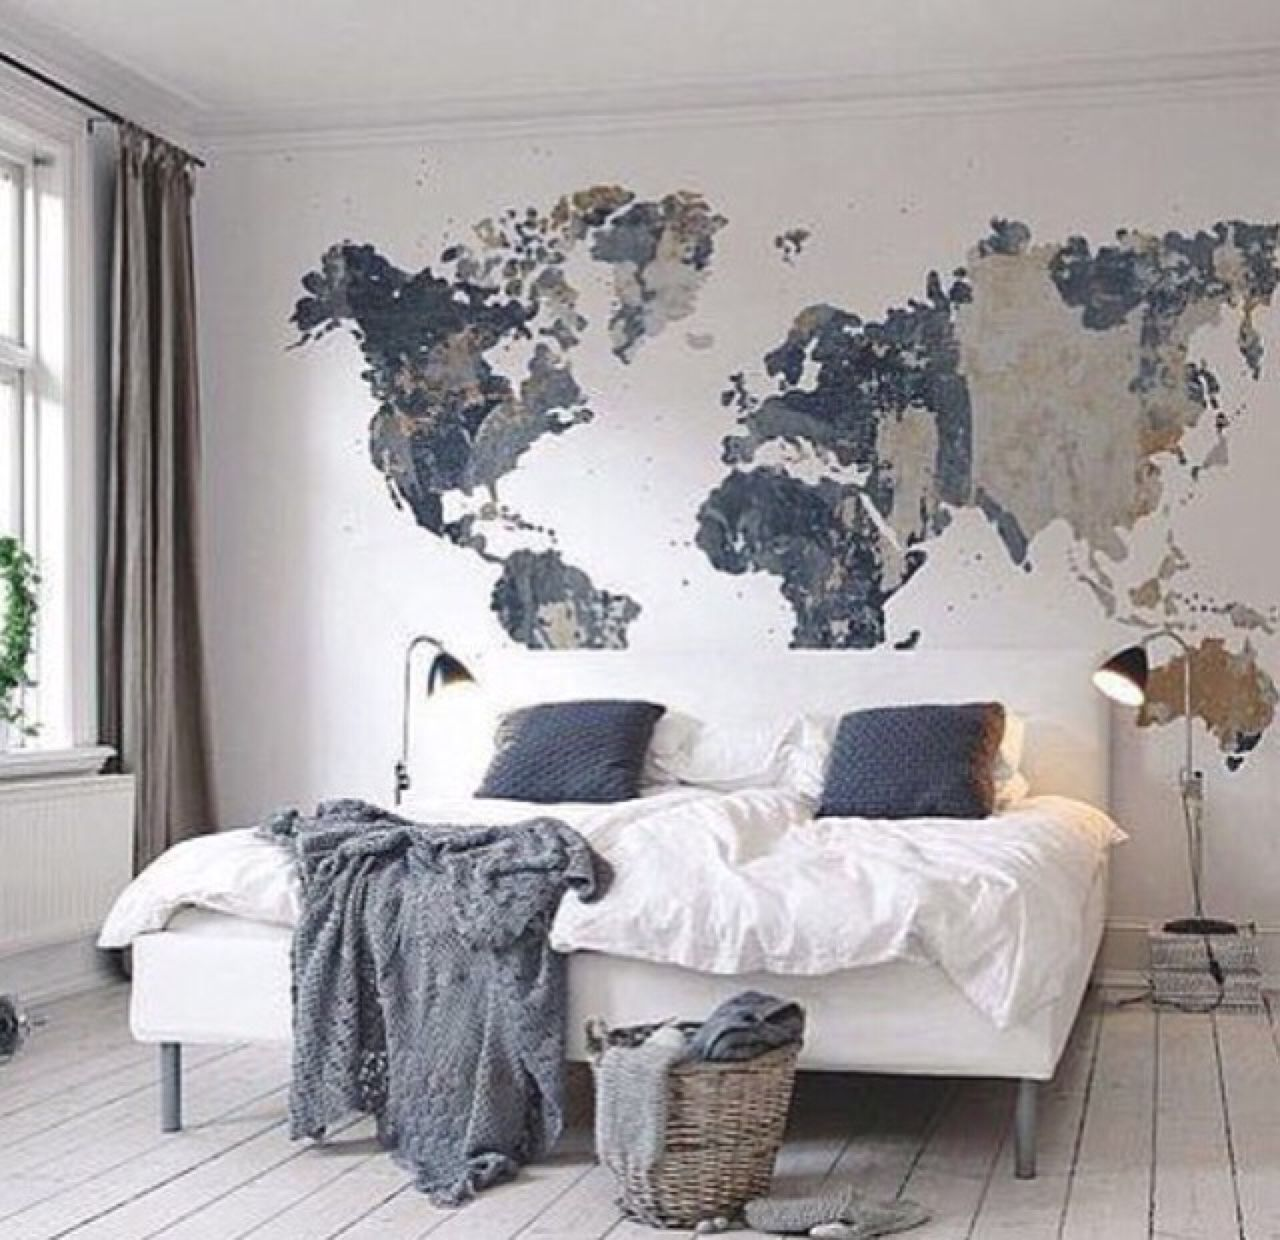 cool map mural see various wall mural designs at home wall murals. Black Bedroom Furniture Sets. Home Design Ideas